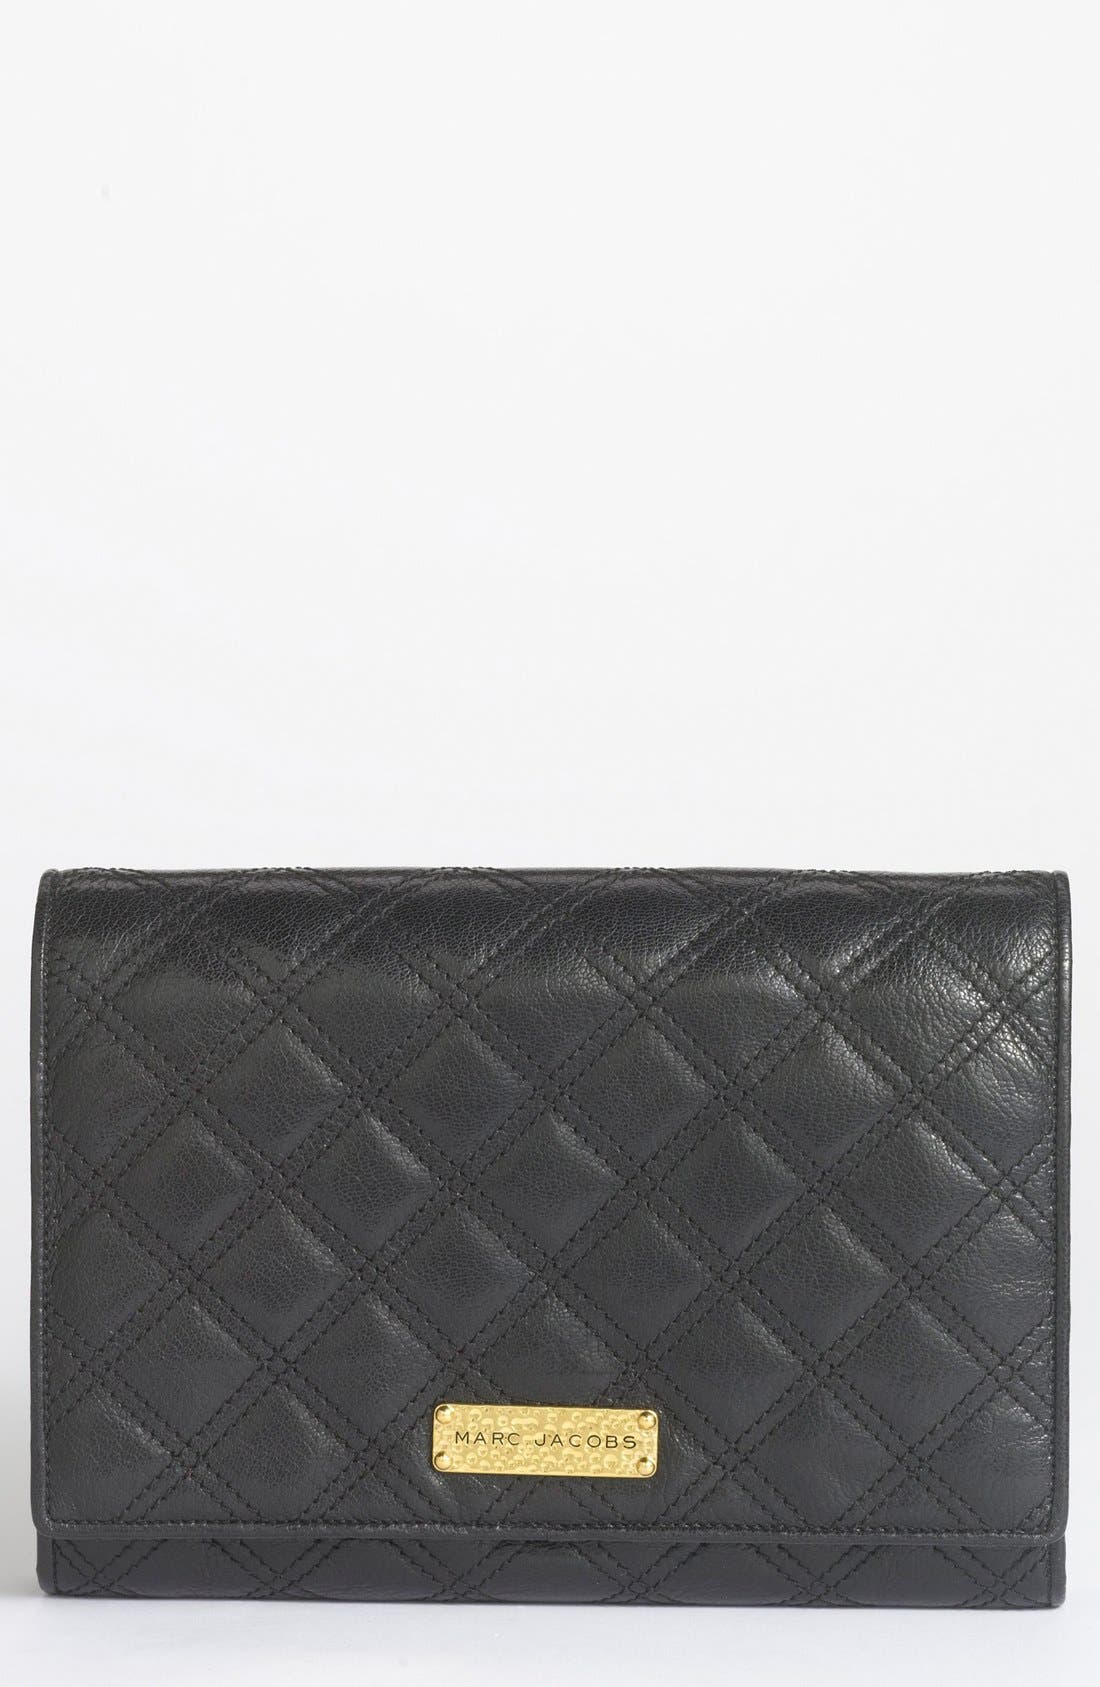 Alternate Image 1 Selected - MARC JACOBS 'Baroque' Crossbody Clutch